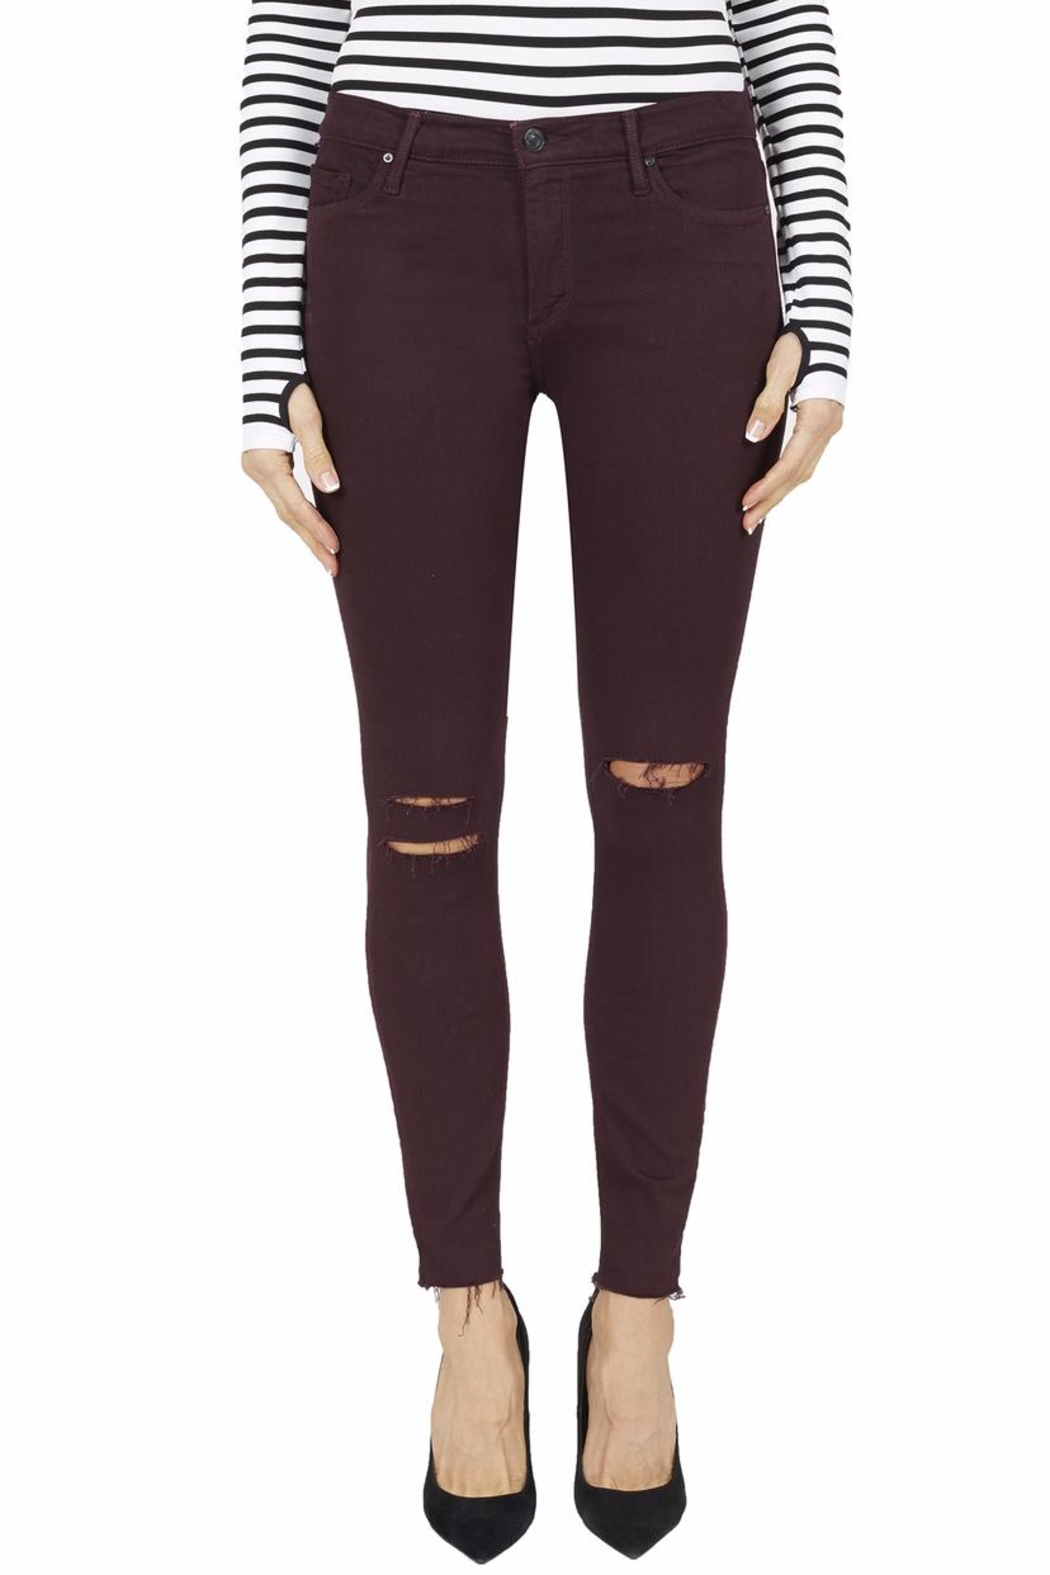 Black Orchid Denim Noah Ankle Fray Jeans - Front Cropped Image